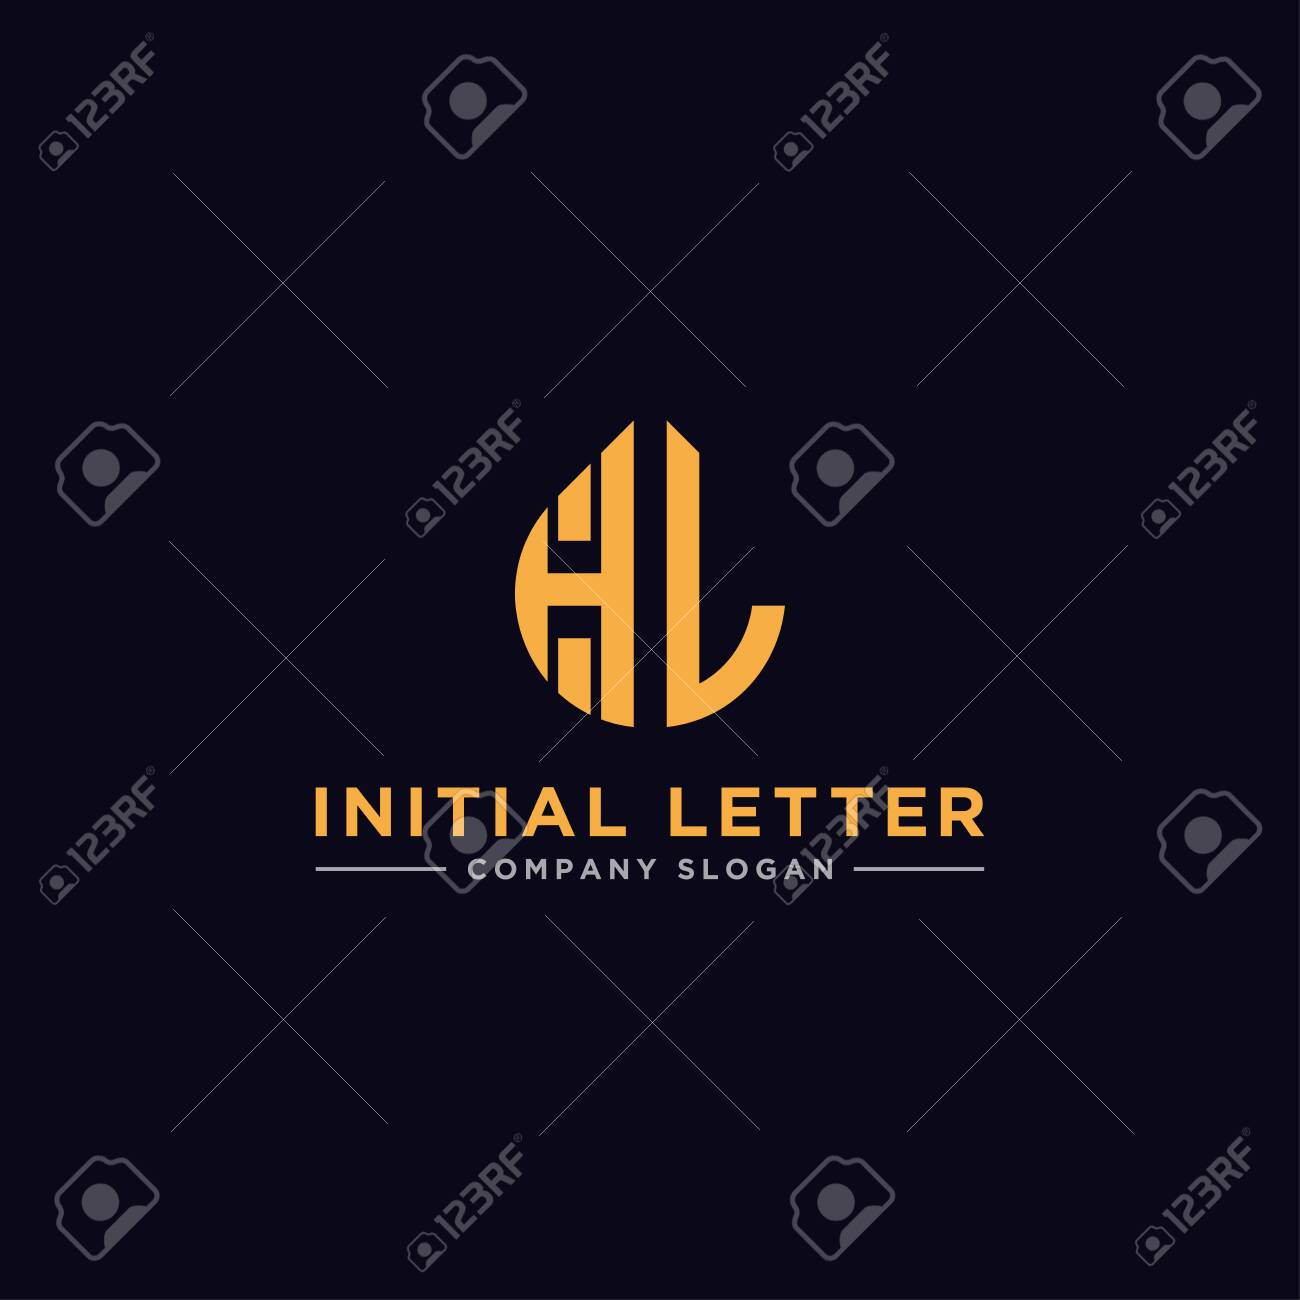 Hl Letters Initial Icons Monogram Vector Inspiration Logo Royalty Free Cliparts Vectors And Stock Illustration Image 152428921